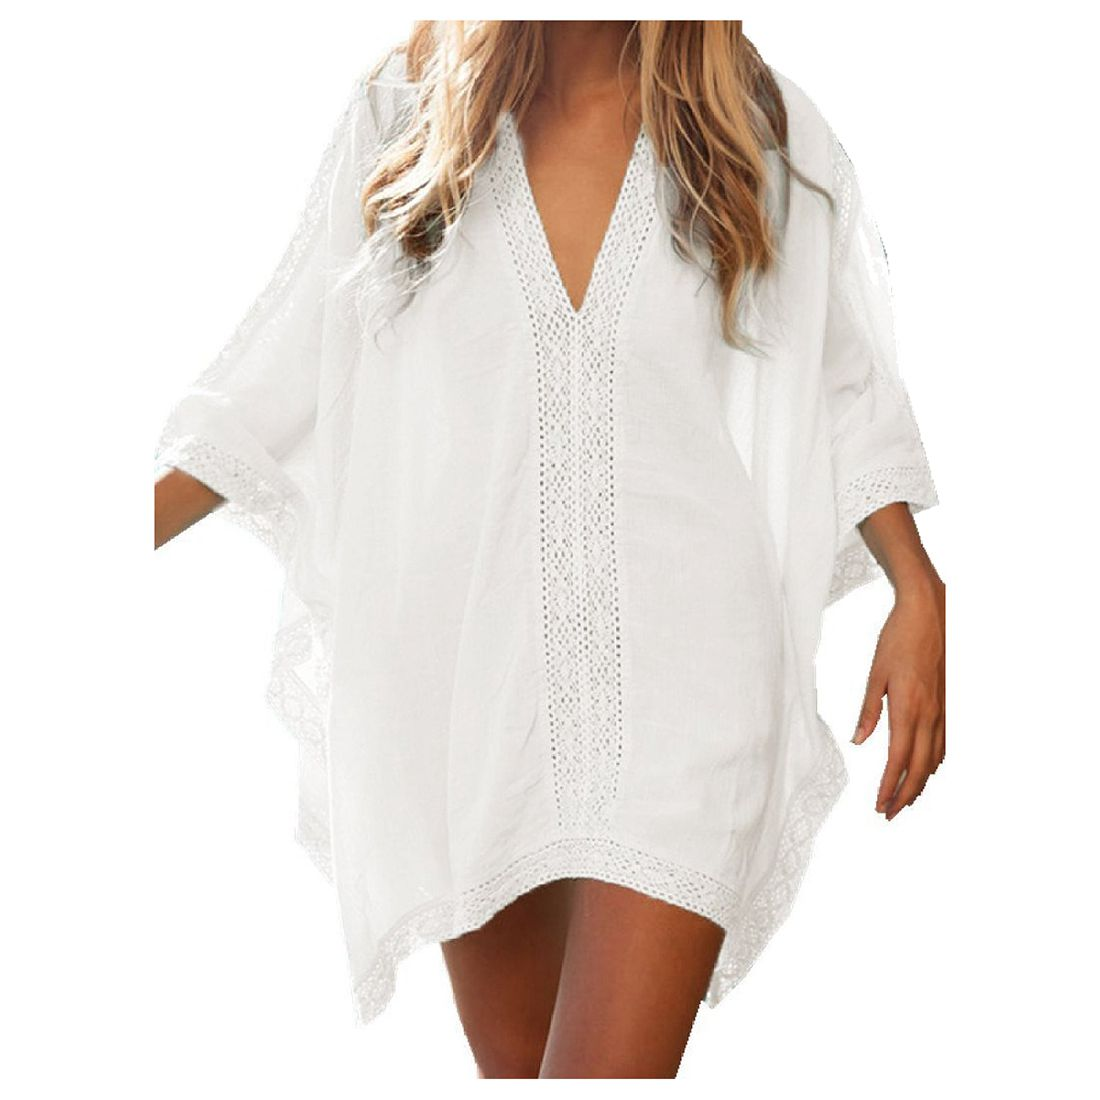 Womens Solid Oversized Beach Cover Up Swimsuit Bathing Suit Beach Dress, White